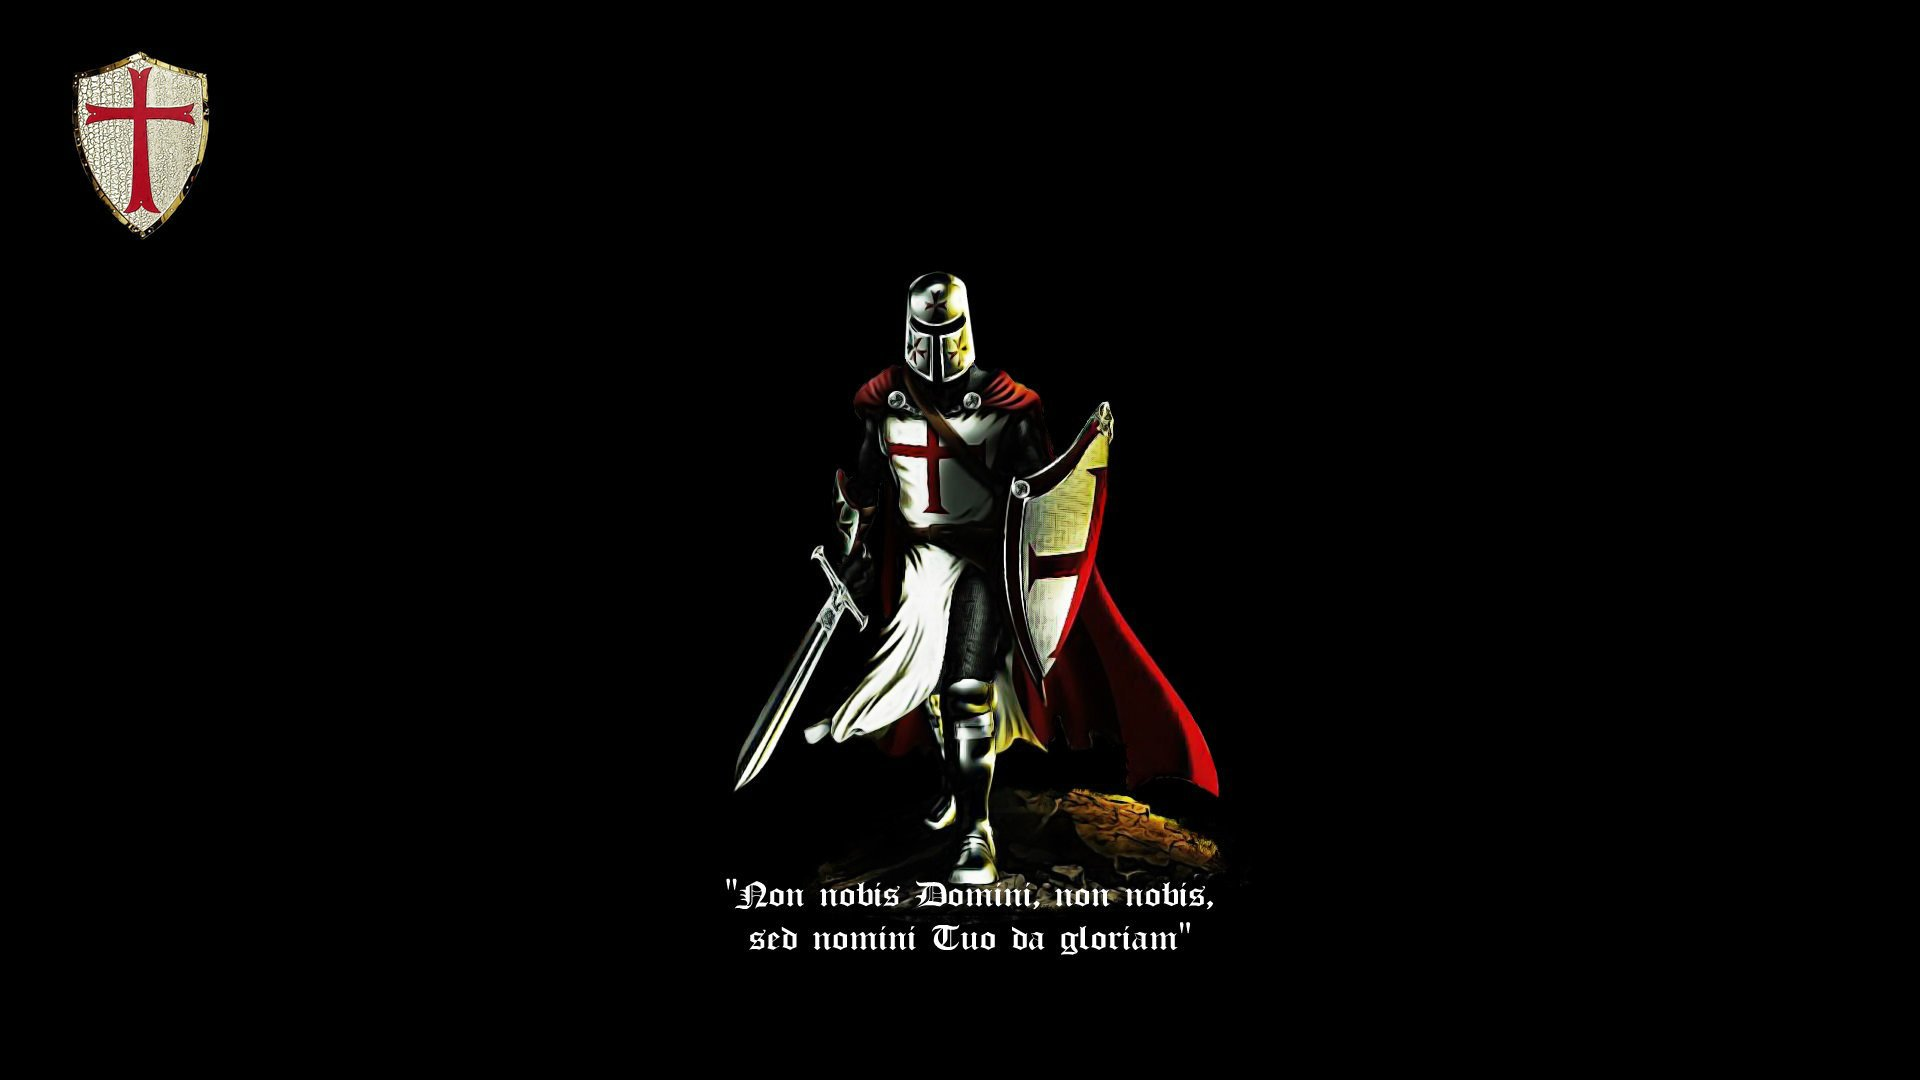 knights templar Visit this site dedicated to providing information about the facts, history of knights templar fast and accurate facts about the knights templar learn about the history of the knights.